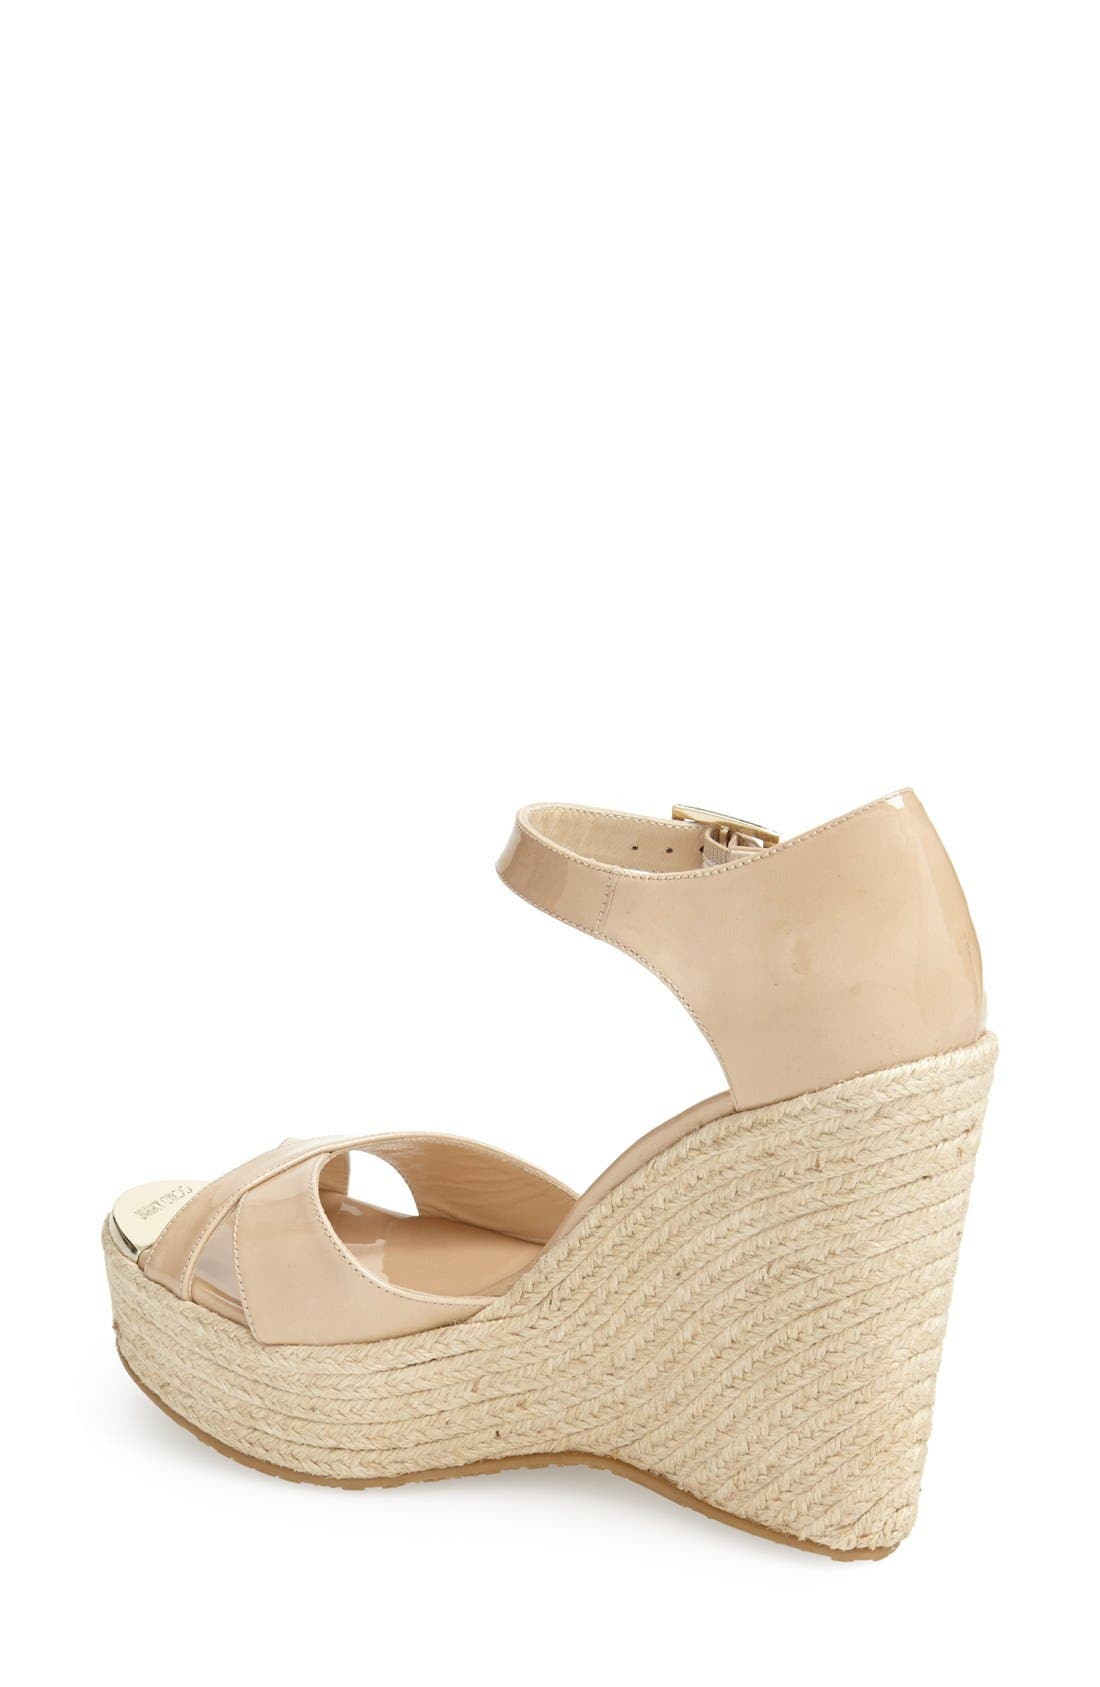 Alternate Image 2  - Jimmy Choo 'Pallis' Wedge Sandal (Nordstrom Exclusive)